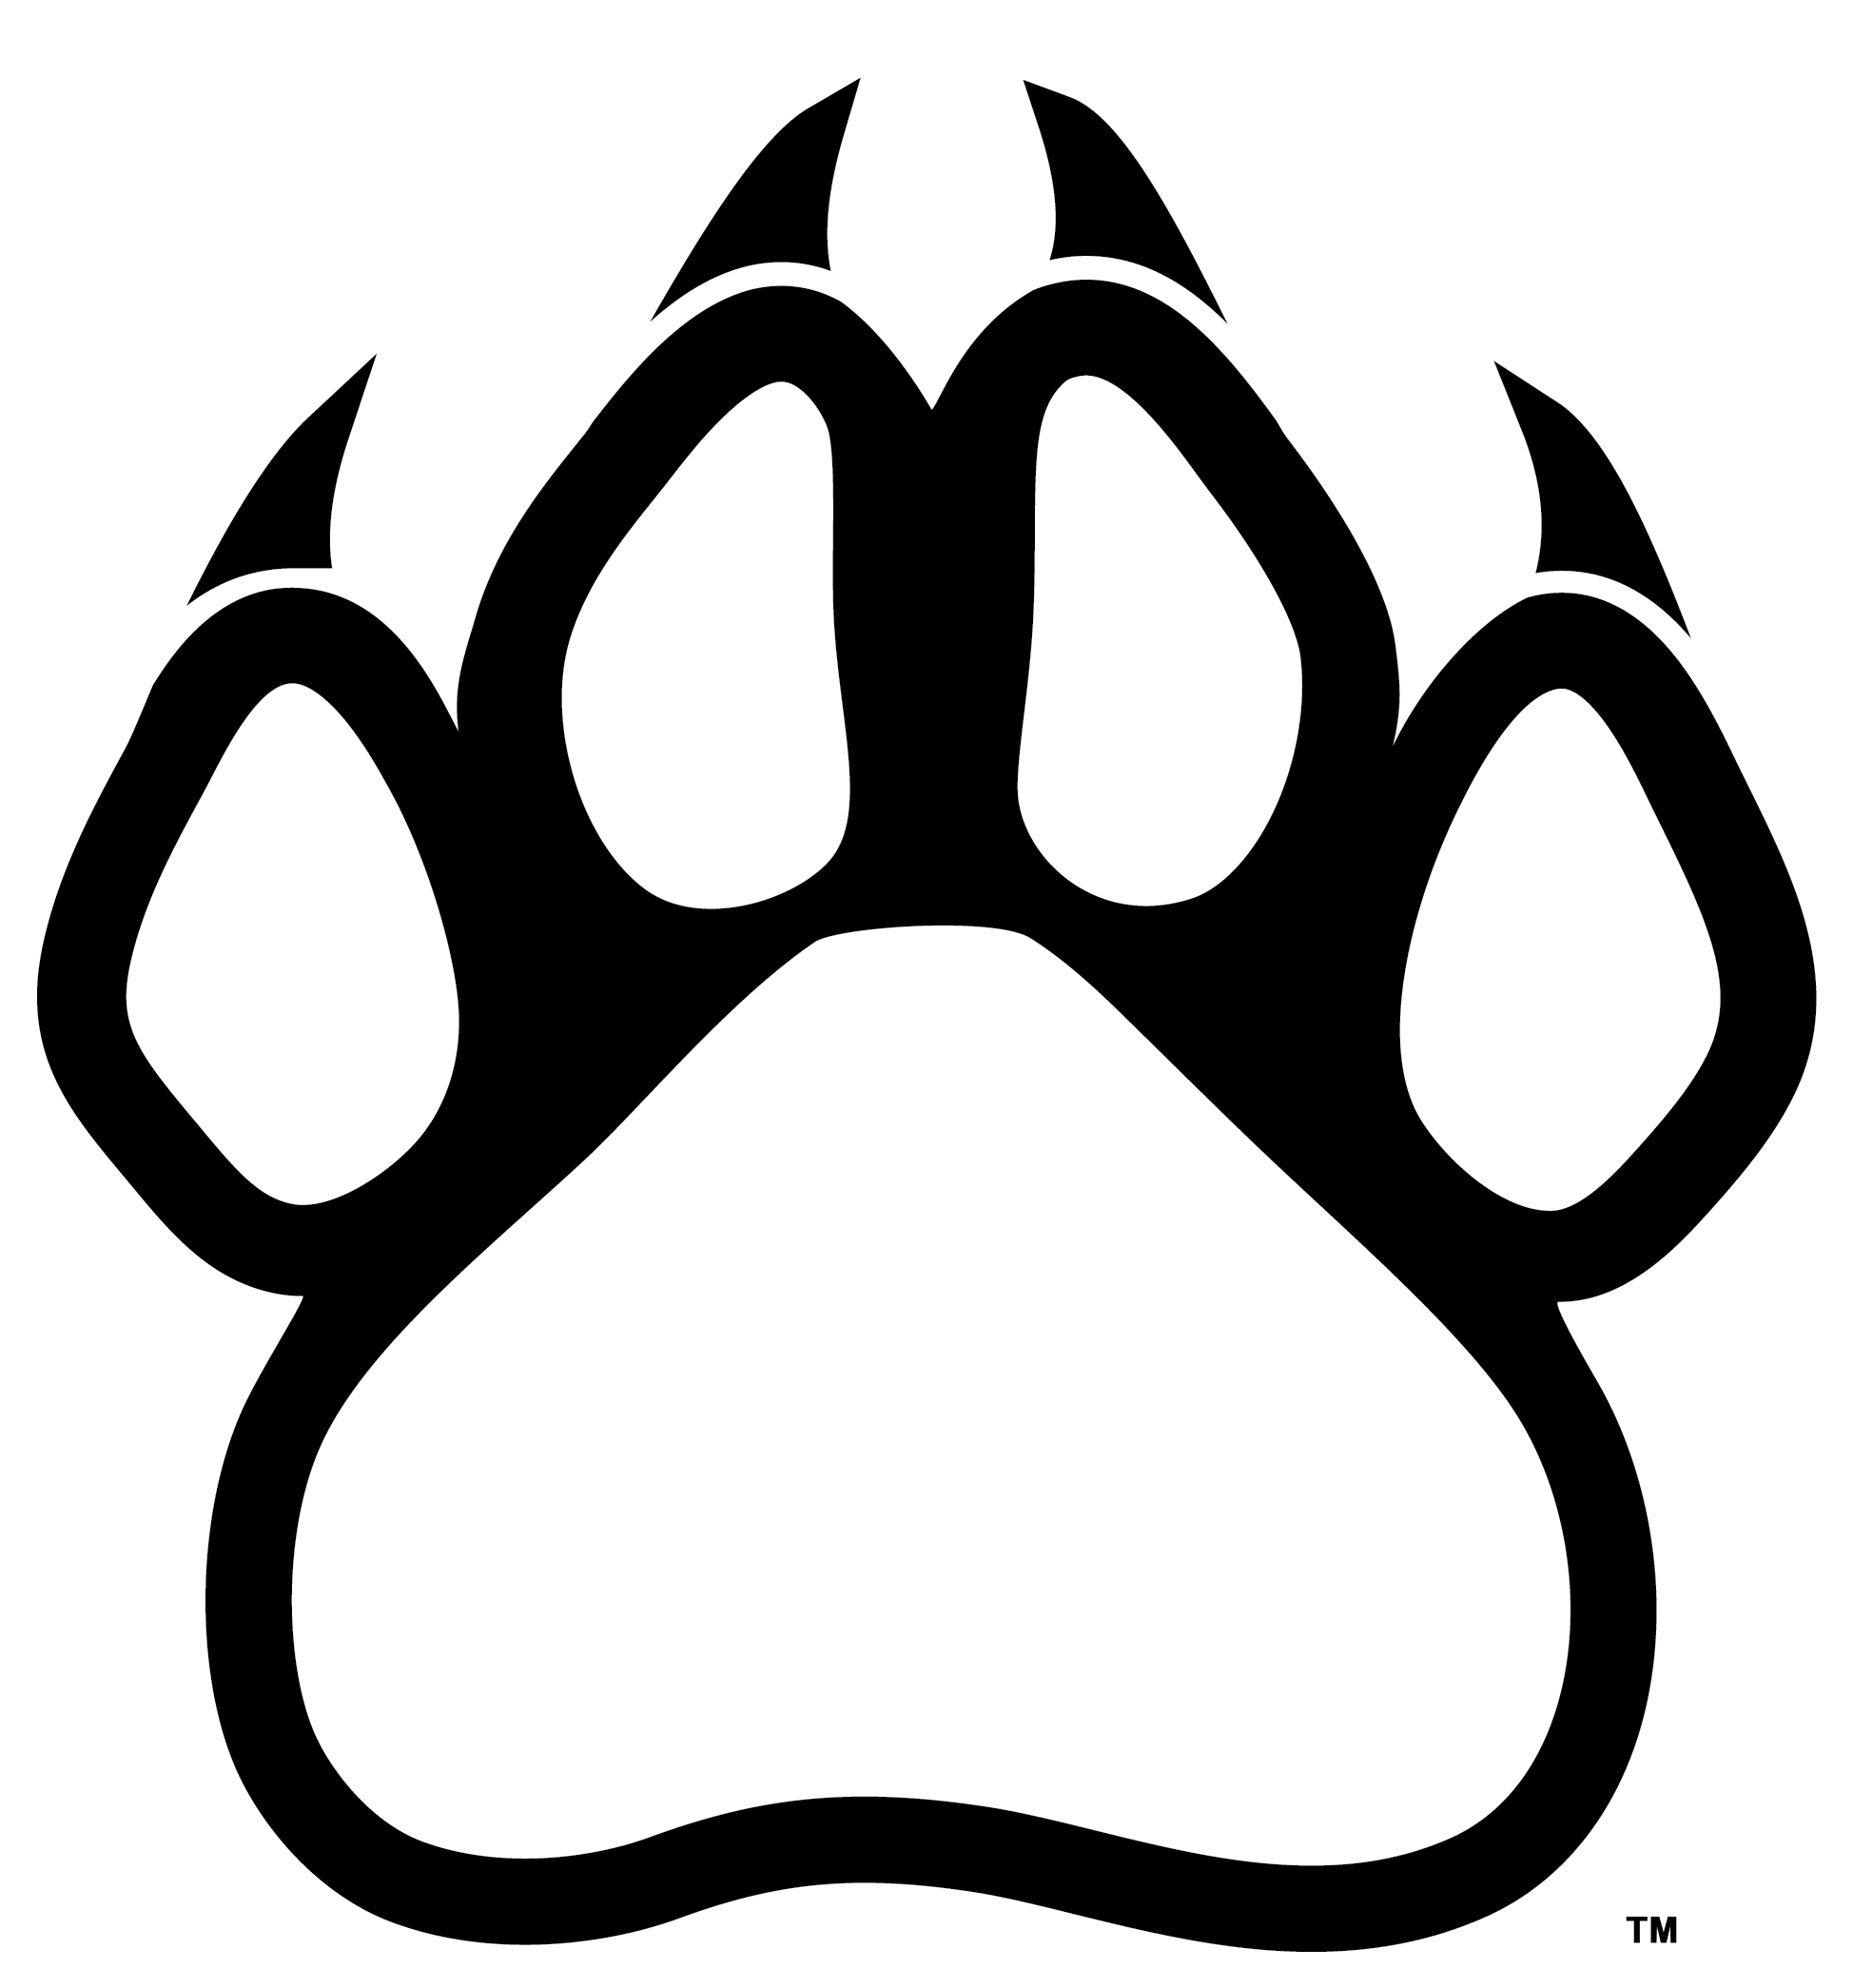 Panther paw print png. Download hd claws clipart